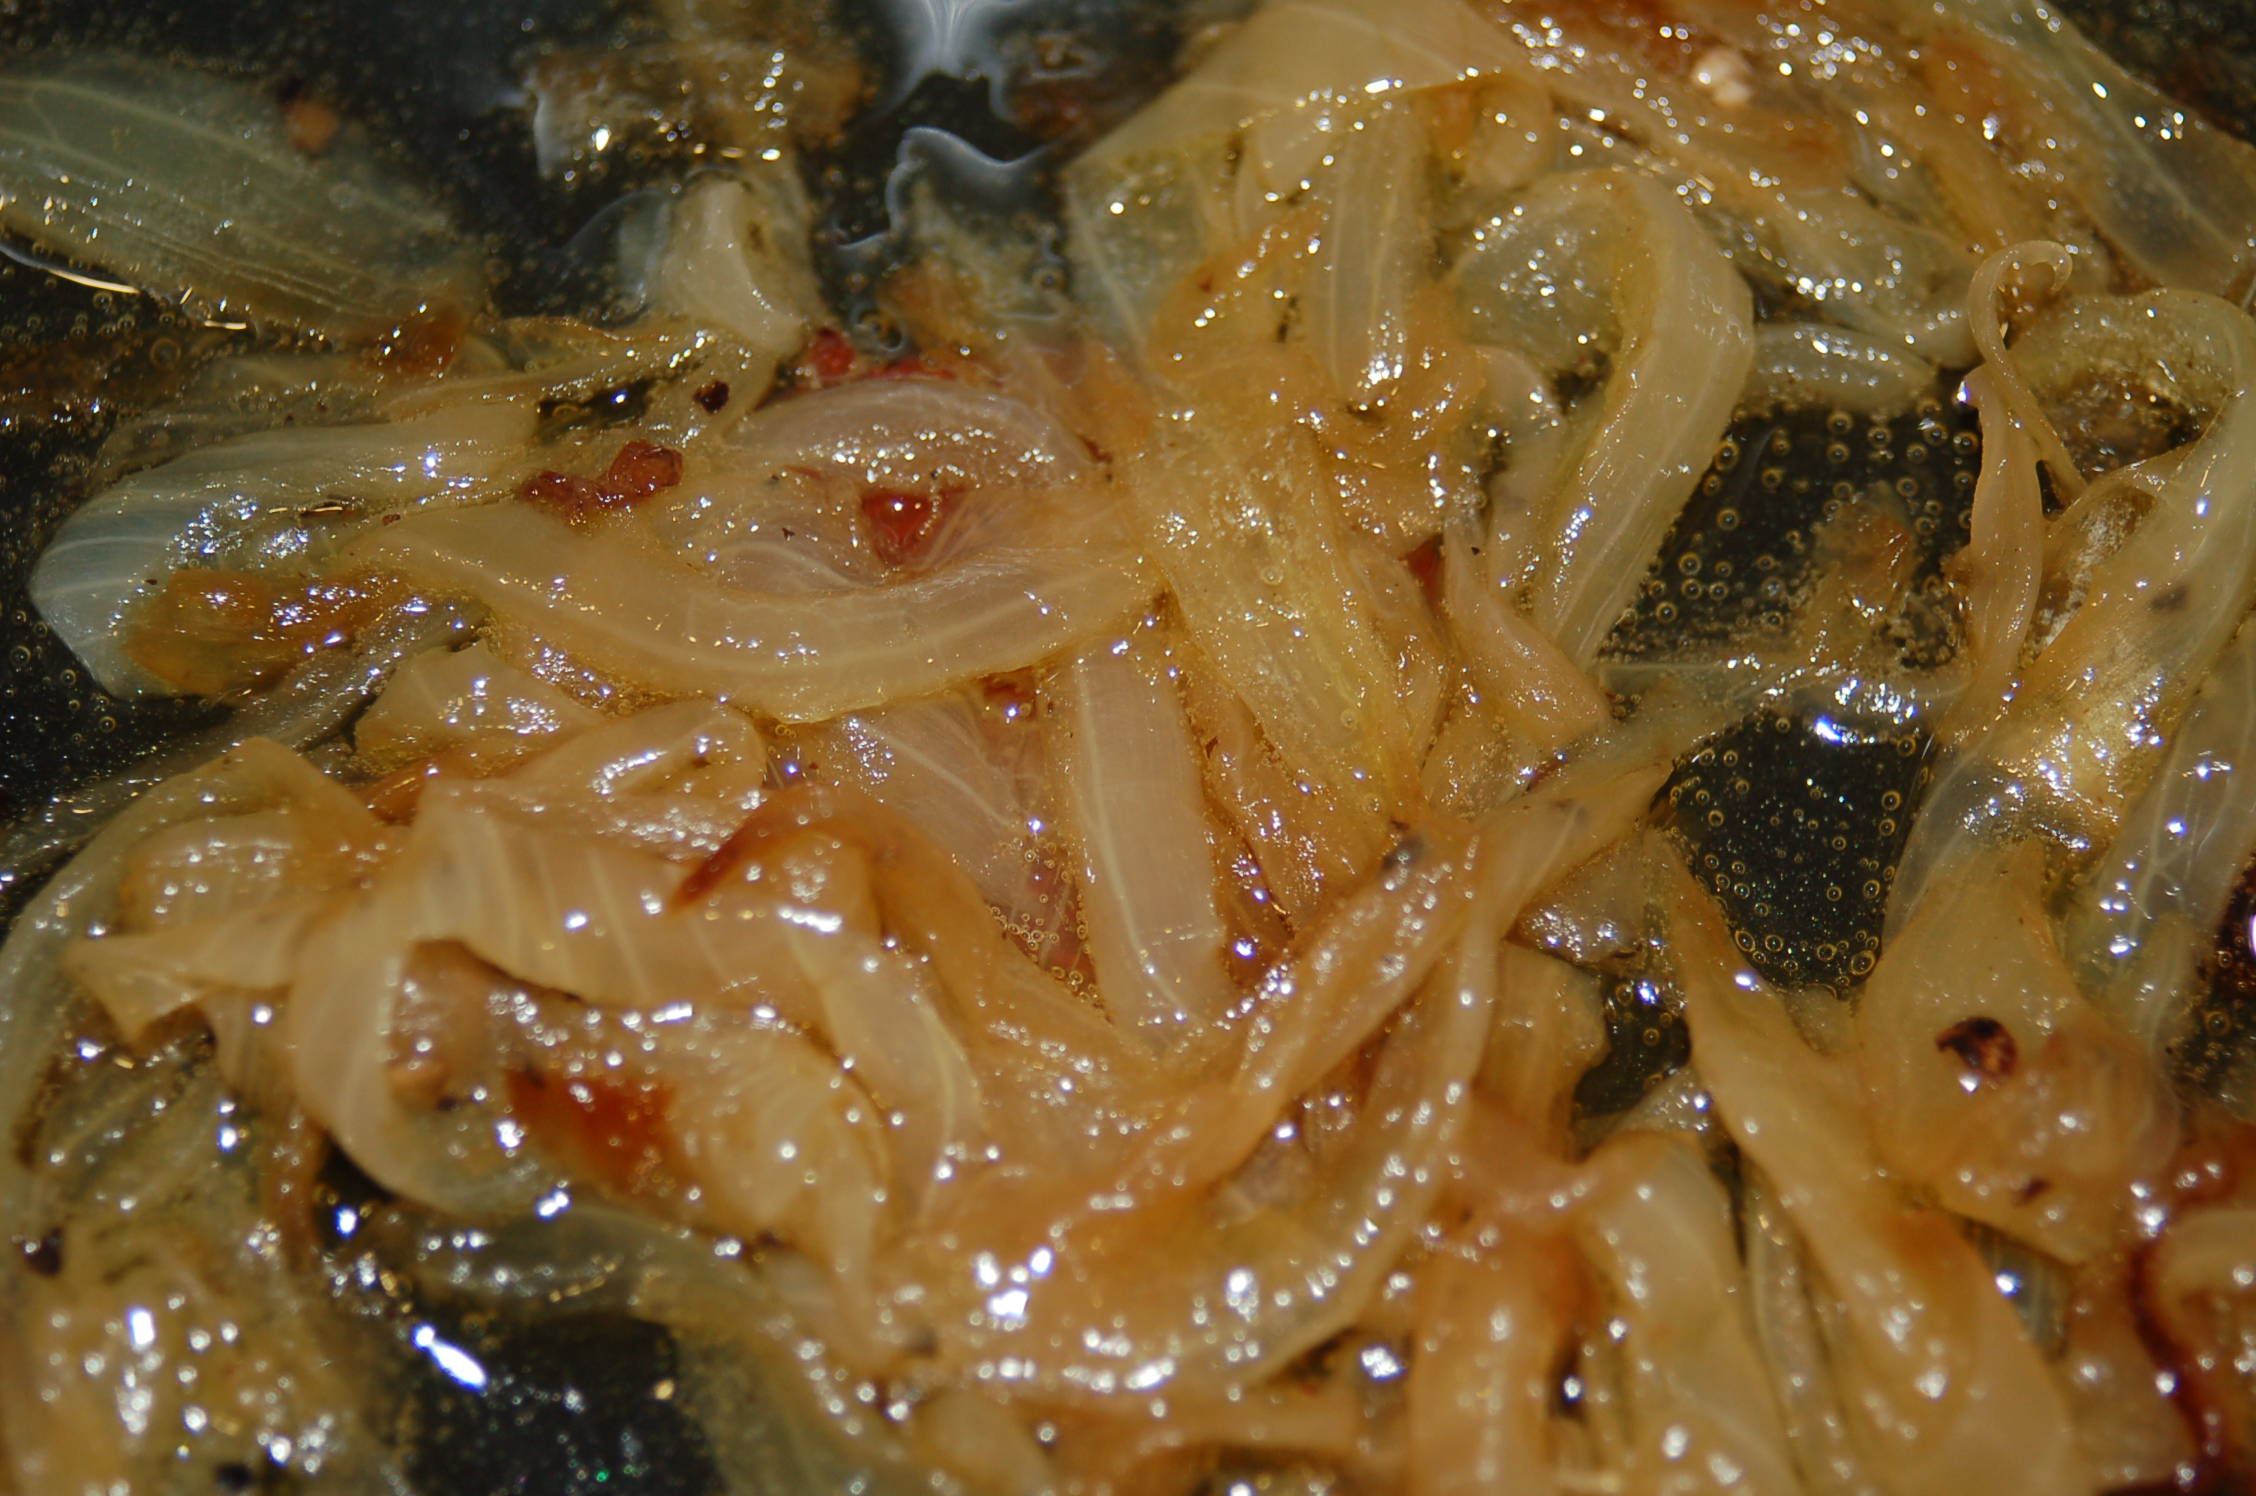 The caramelized onions will be very sweet so a little bit added to the pizza will go a long way.